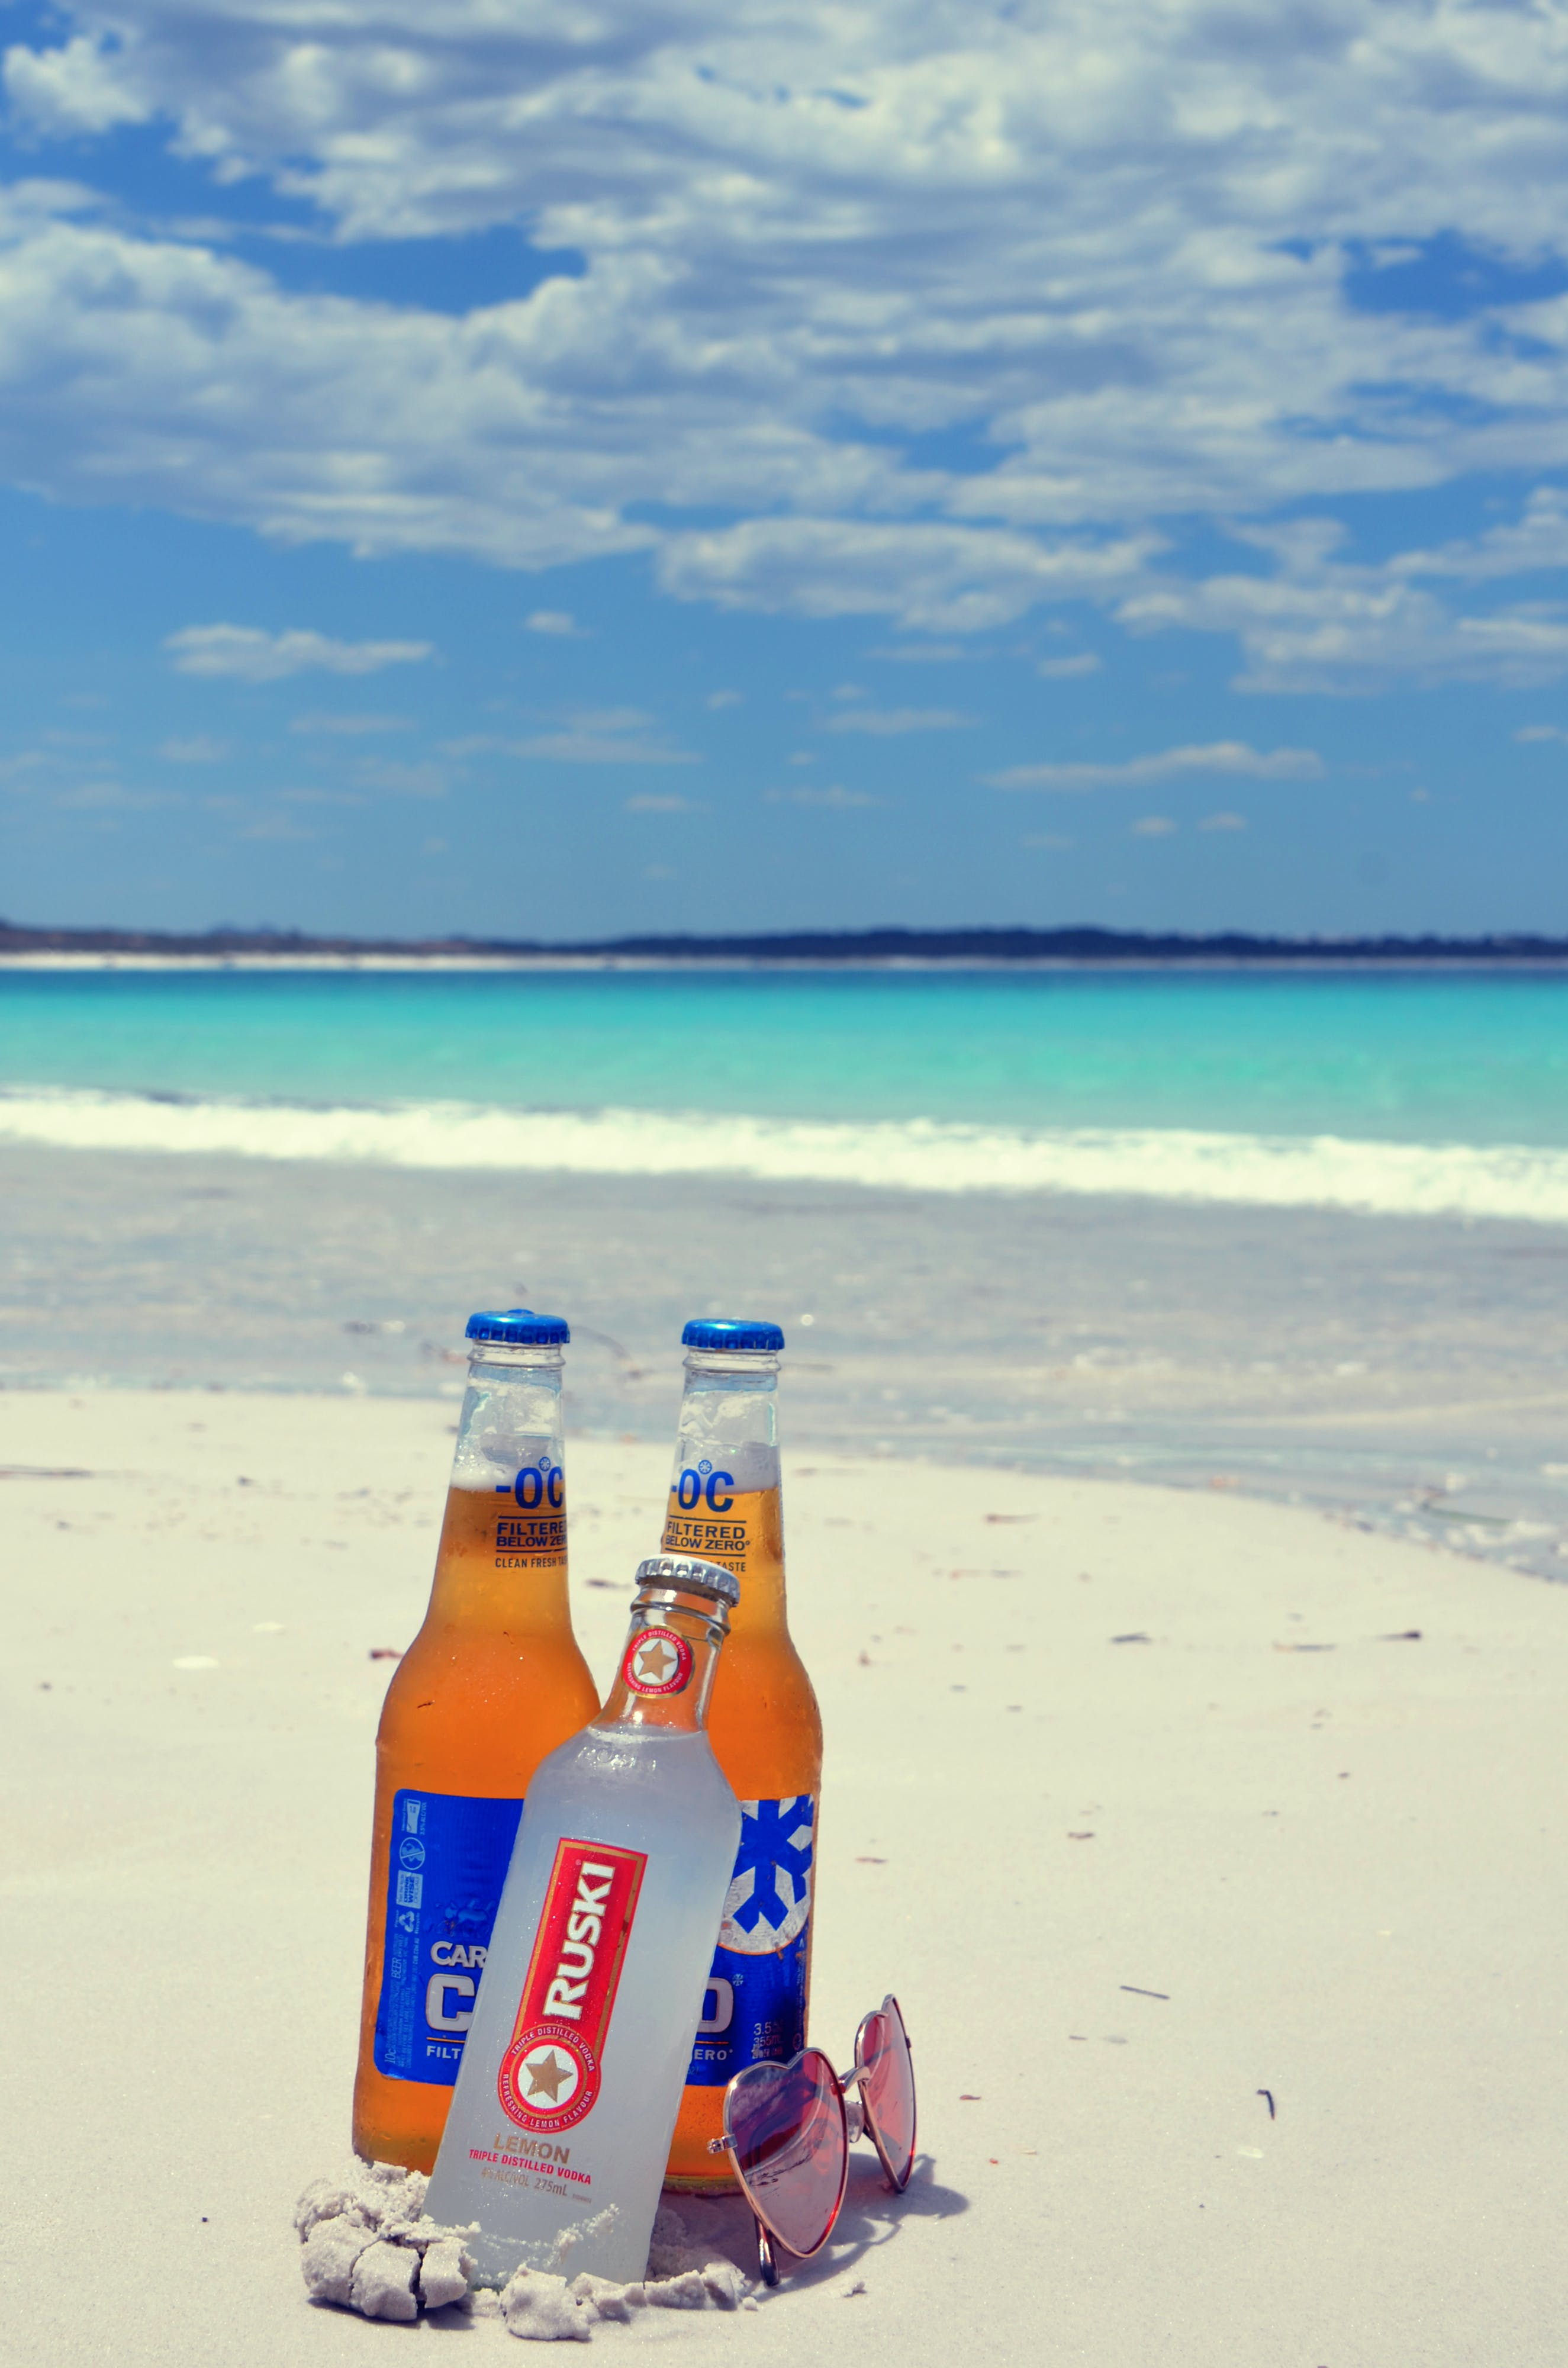 Free stock photo of beach, beer, sand, summer holiday